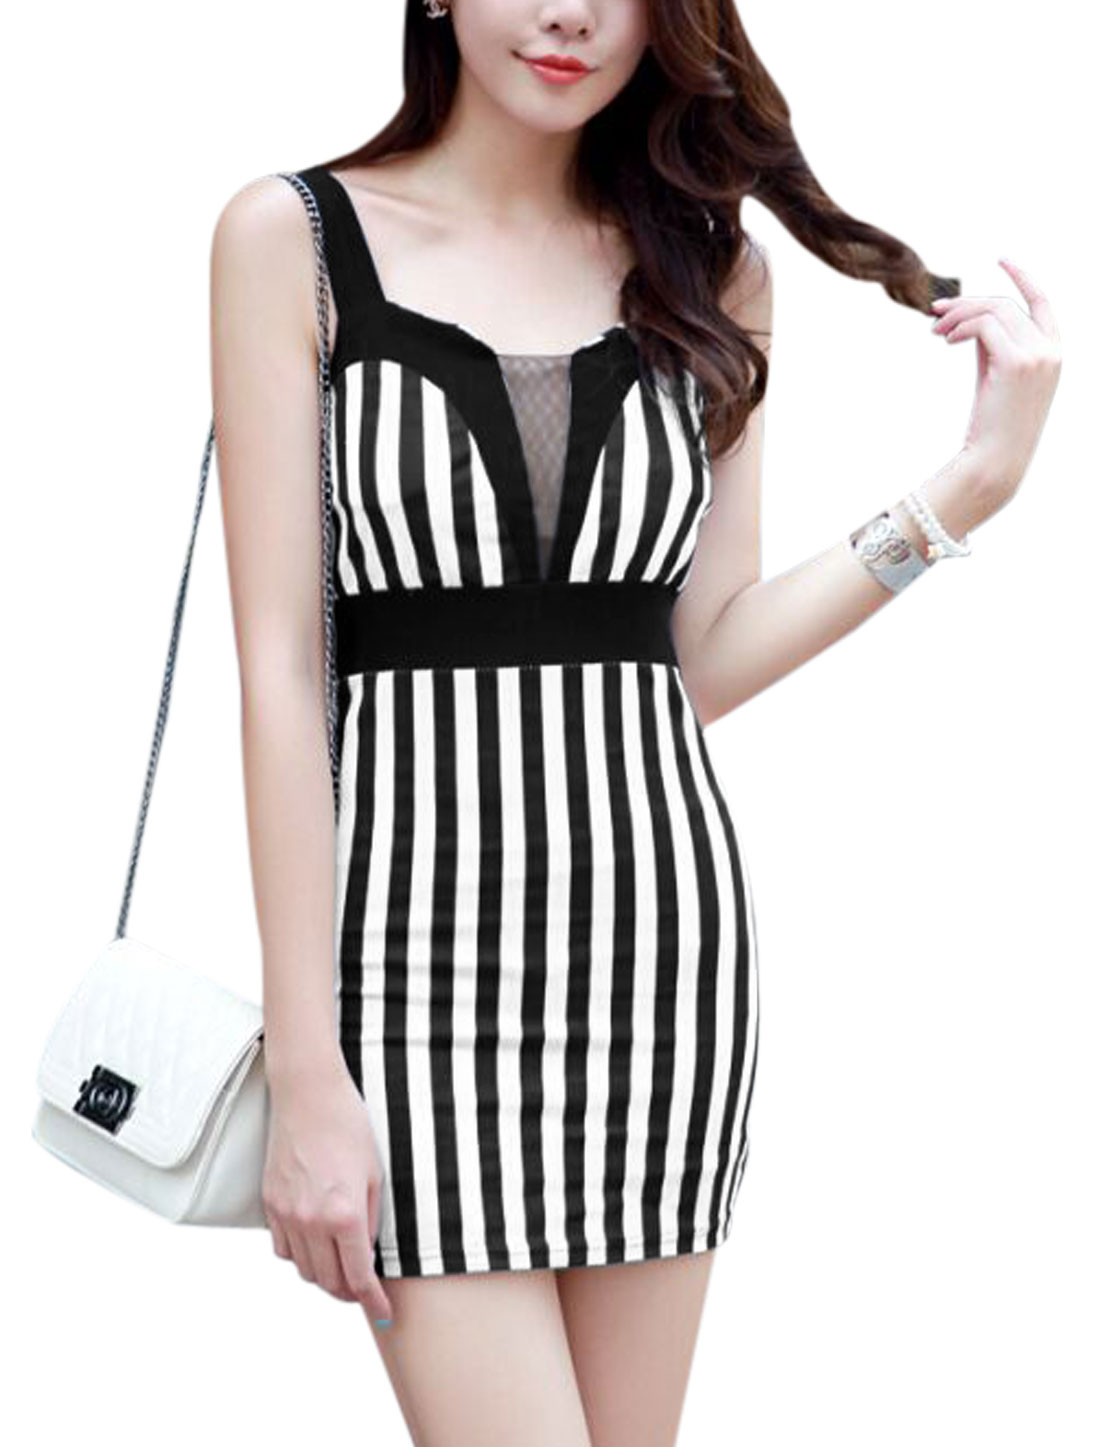 Women Spaghetti Strap Mesh Panel Stripes Sheath Dress Black White XS